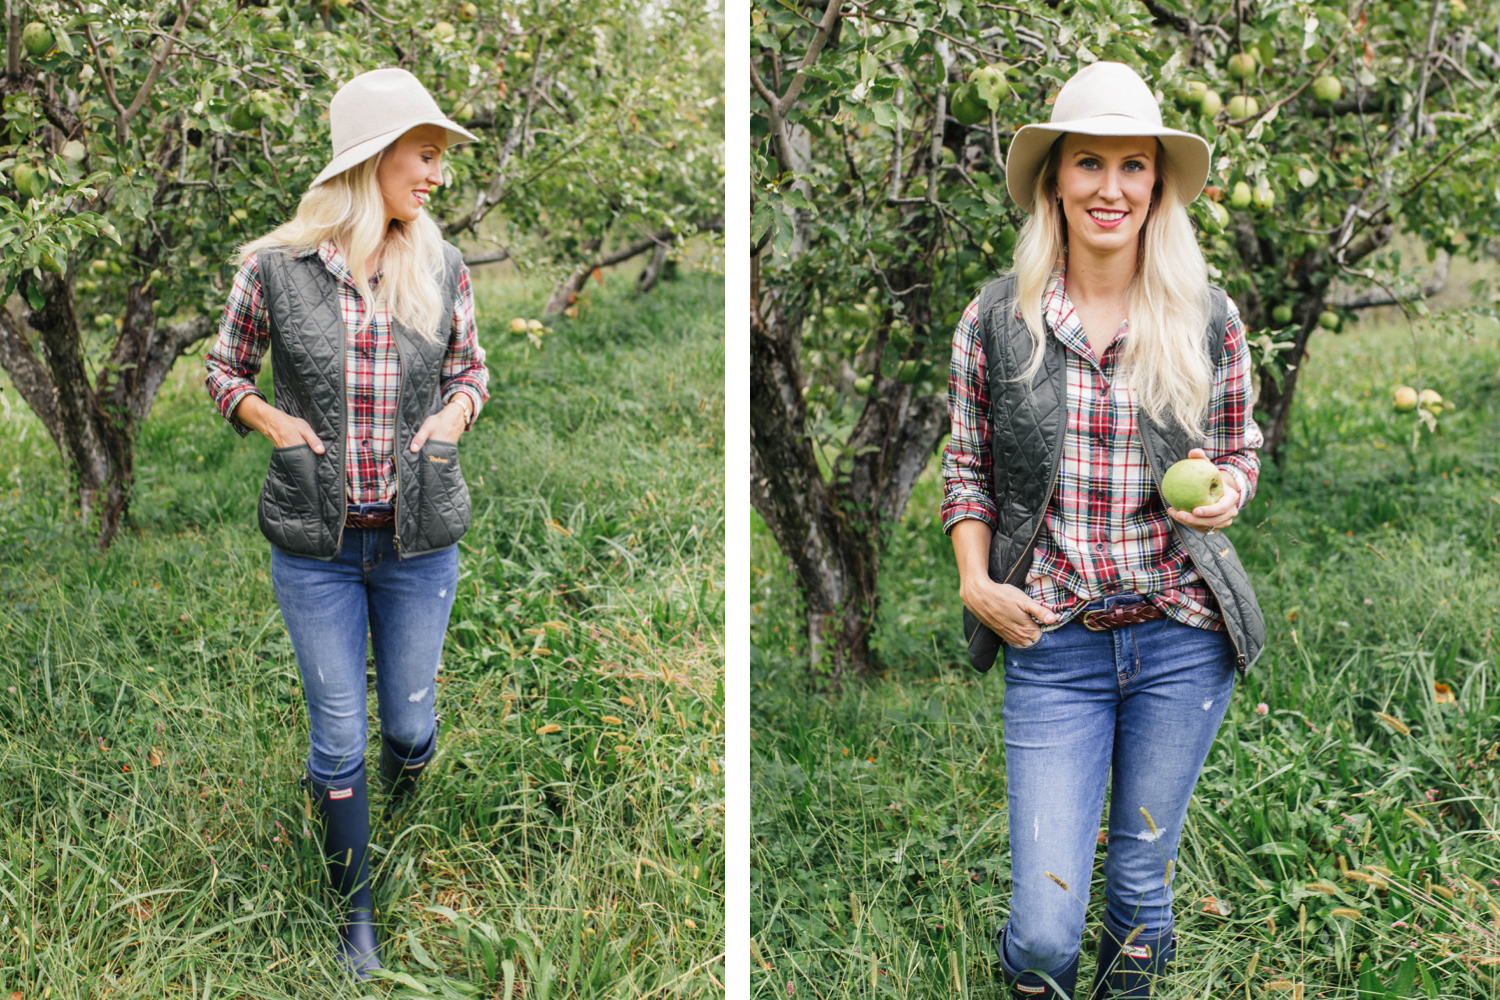 Allison-Cawley-Fall-Essentials-Peachfully-Chic-Apples-1